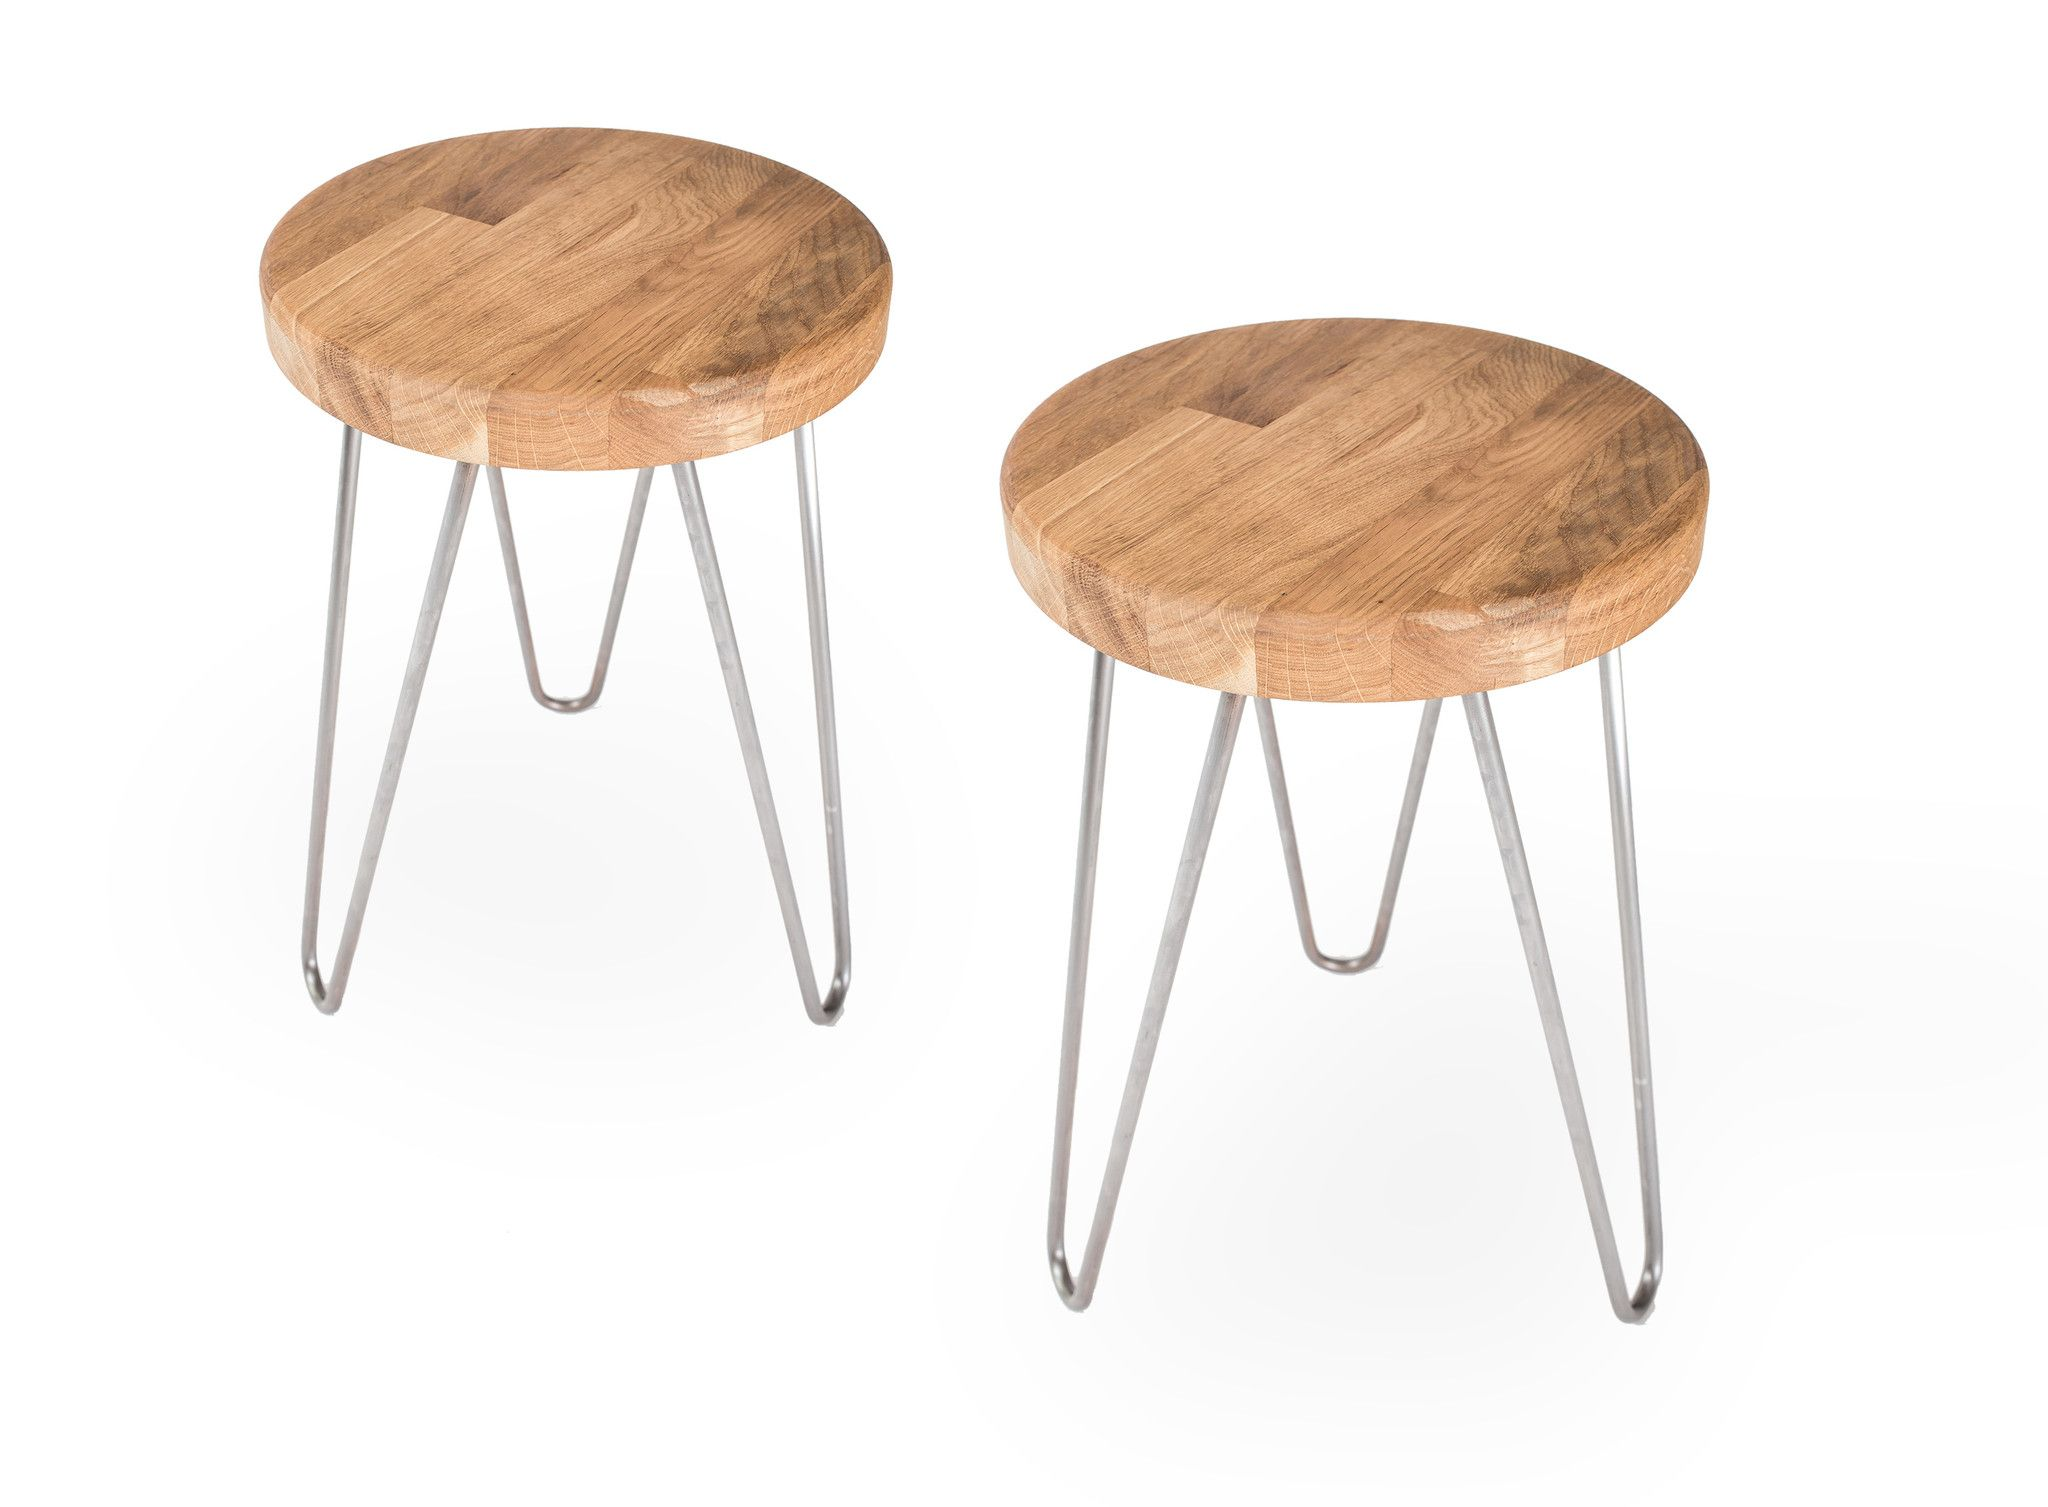 Oak stools- The Hairpin Leg co  sc 1 st  Pinterest : wooden legs for stools - islam-shia.org